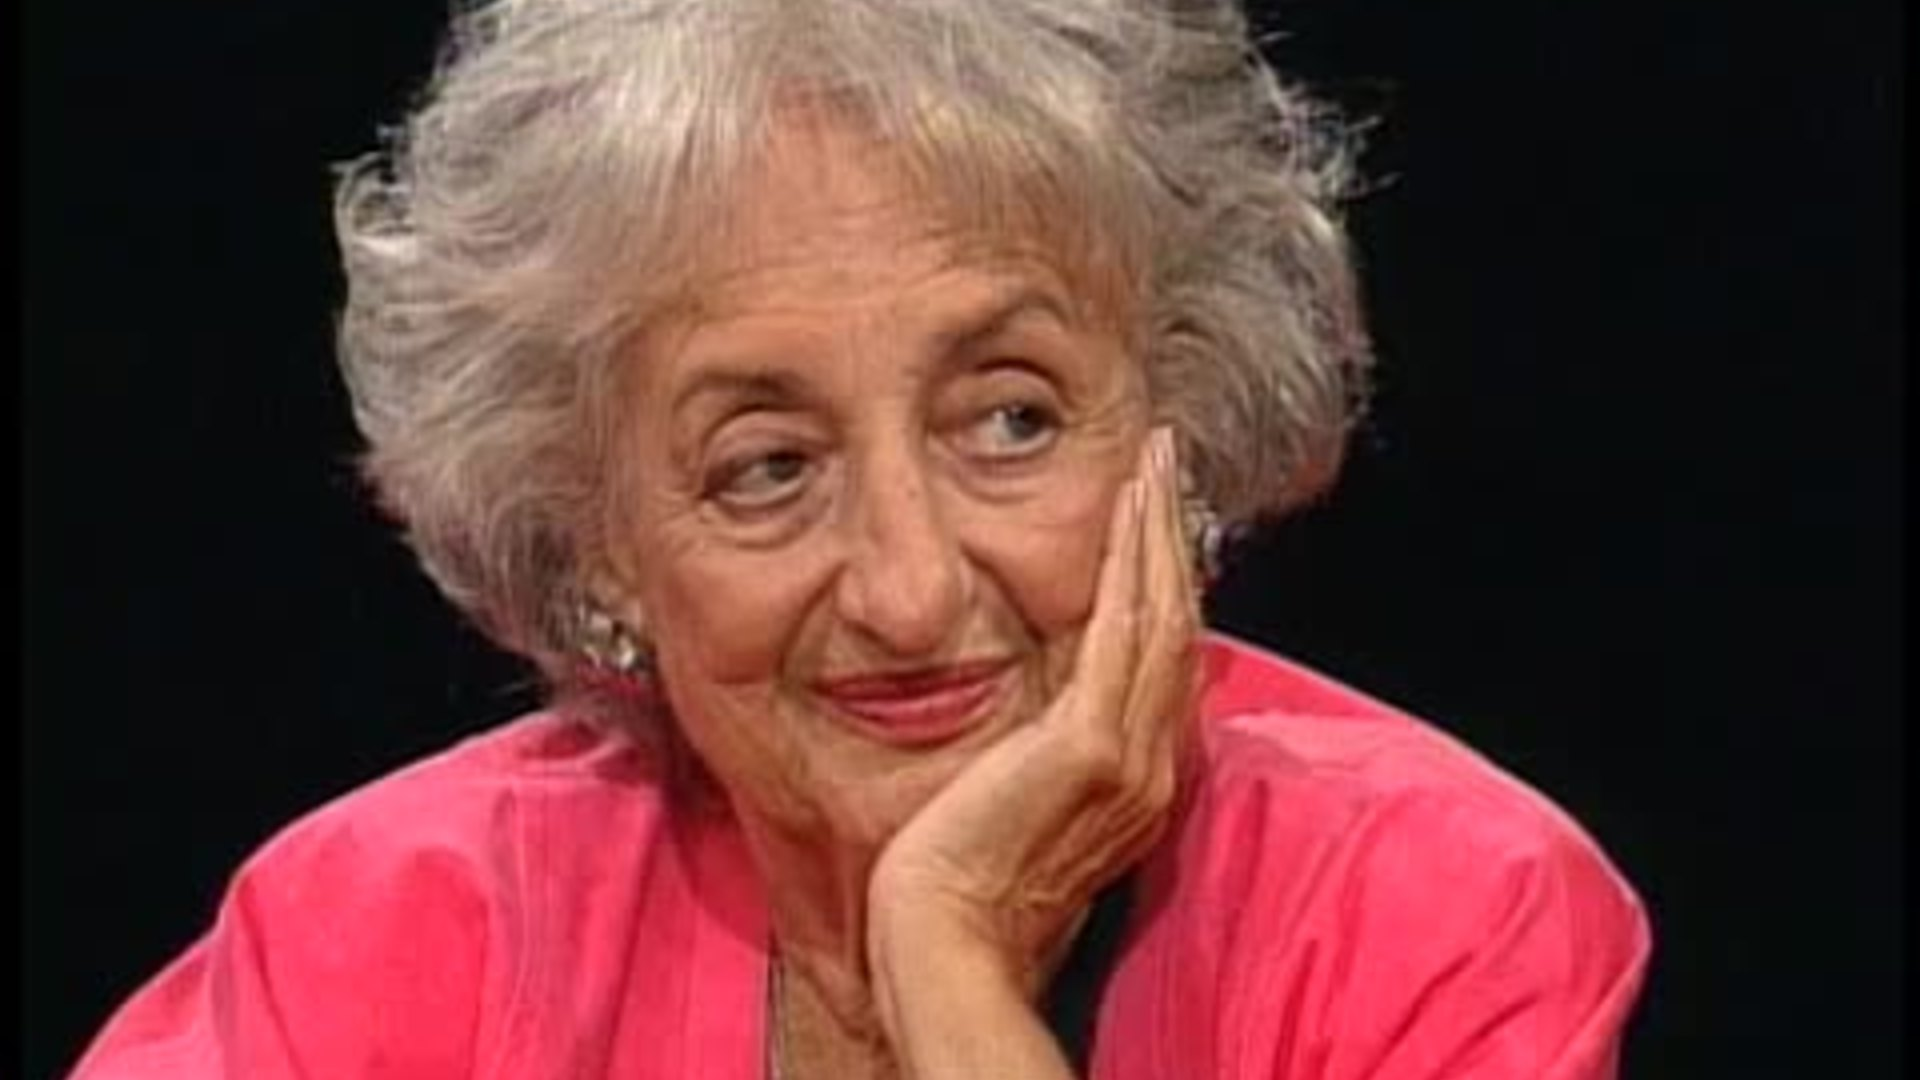 betty friedan Betty friedan betty friedan (born 1921) was a women's rights activist, author of the feminine mystique, and a founding member of the national organization for women [1], the national abortion rights action league, and the national women's political caucus.